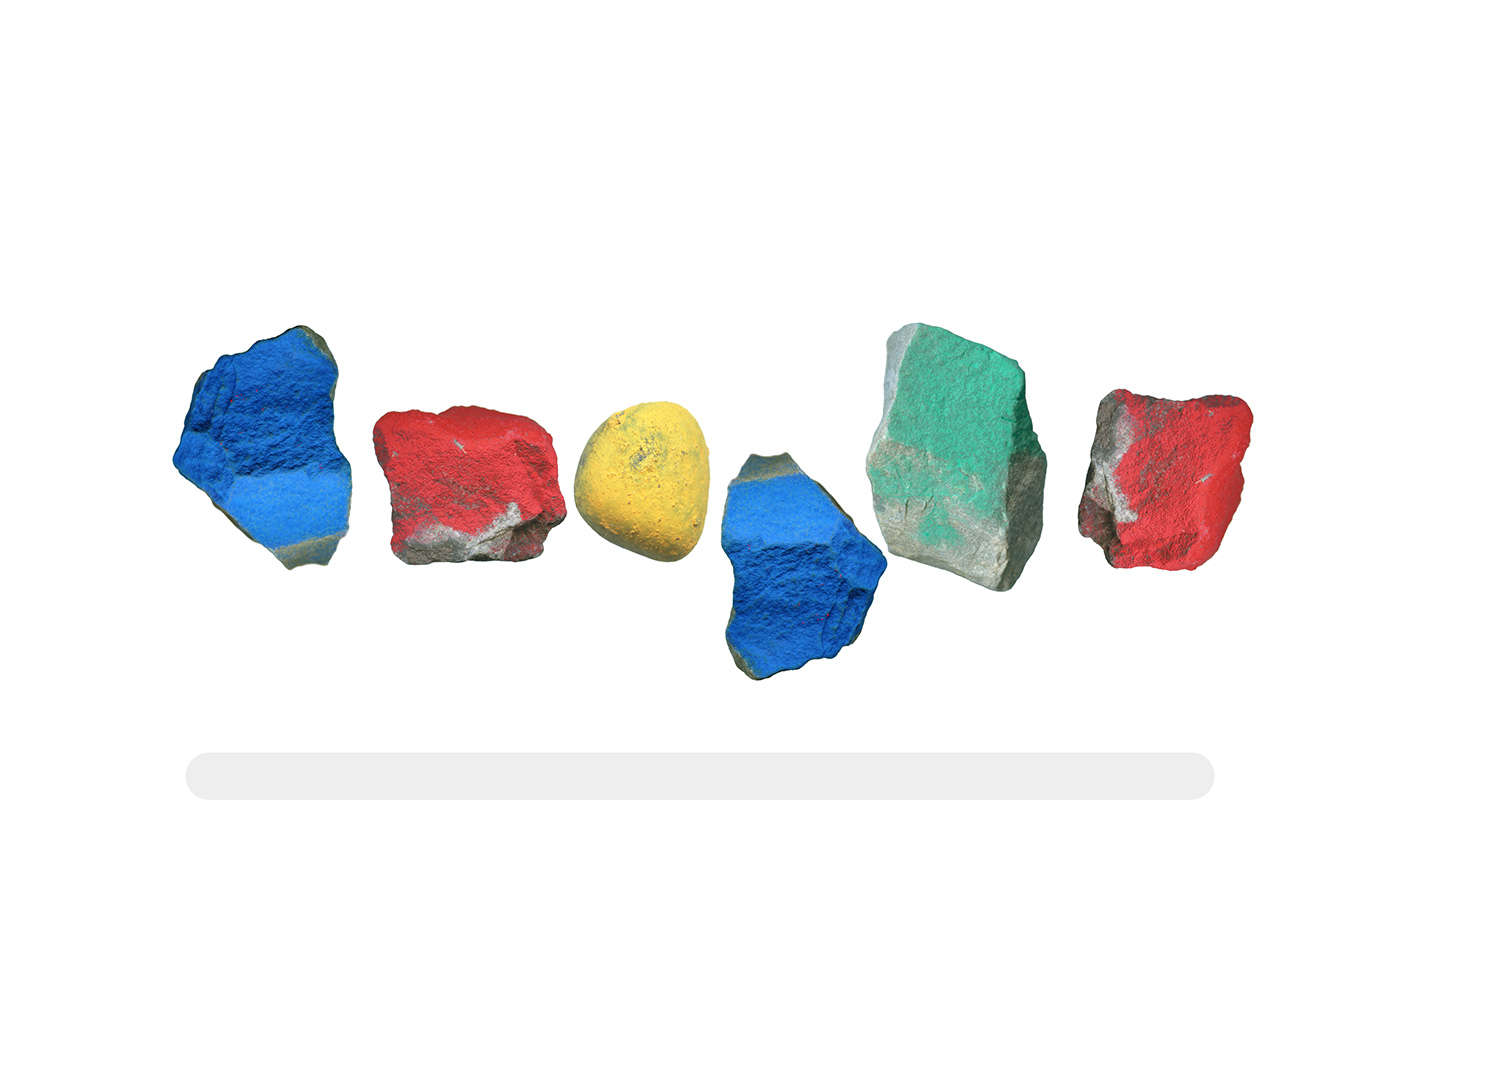 Colored Rock Composite GOOGLE w BAR sRGB 1500px.jpg